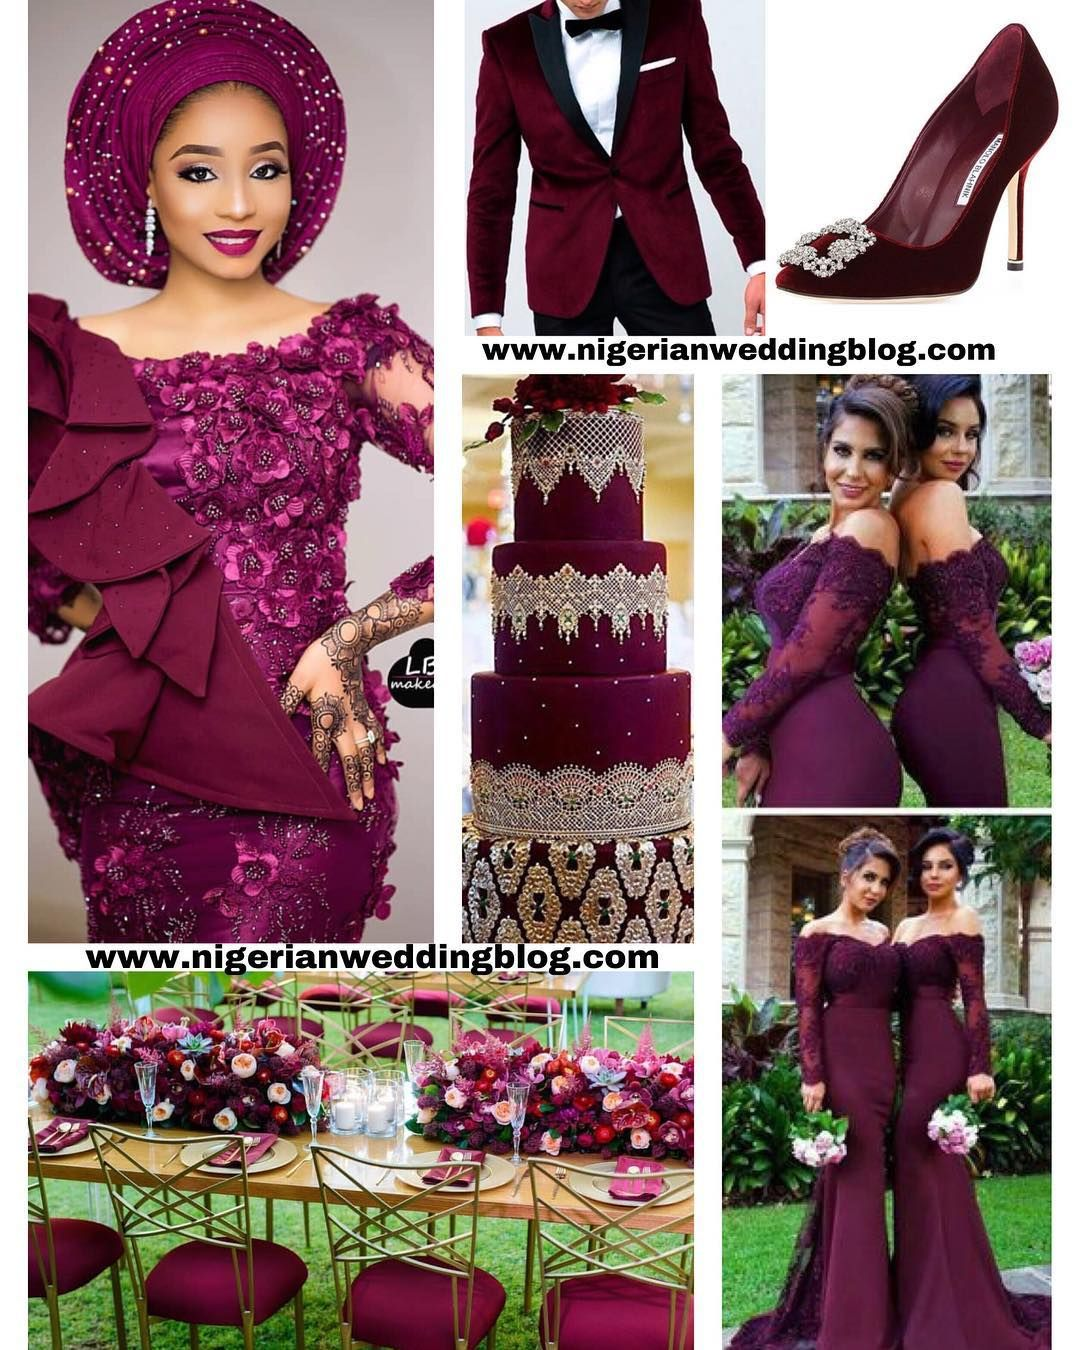 Nigerian Wedding Burgundy Wedding Colour Scheme Burgundy Wedding Colors Nigerian Bridesmaid Dresses Bridesmaid Dress Colors